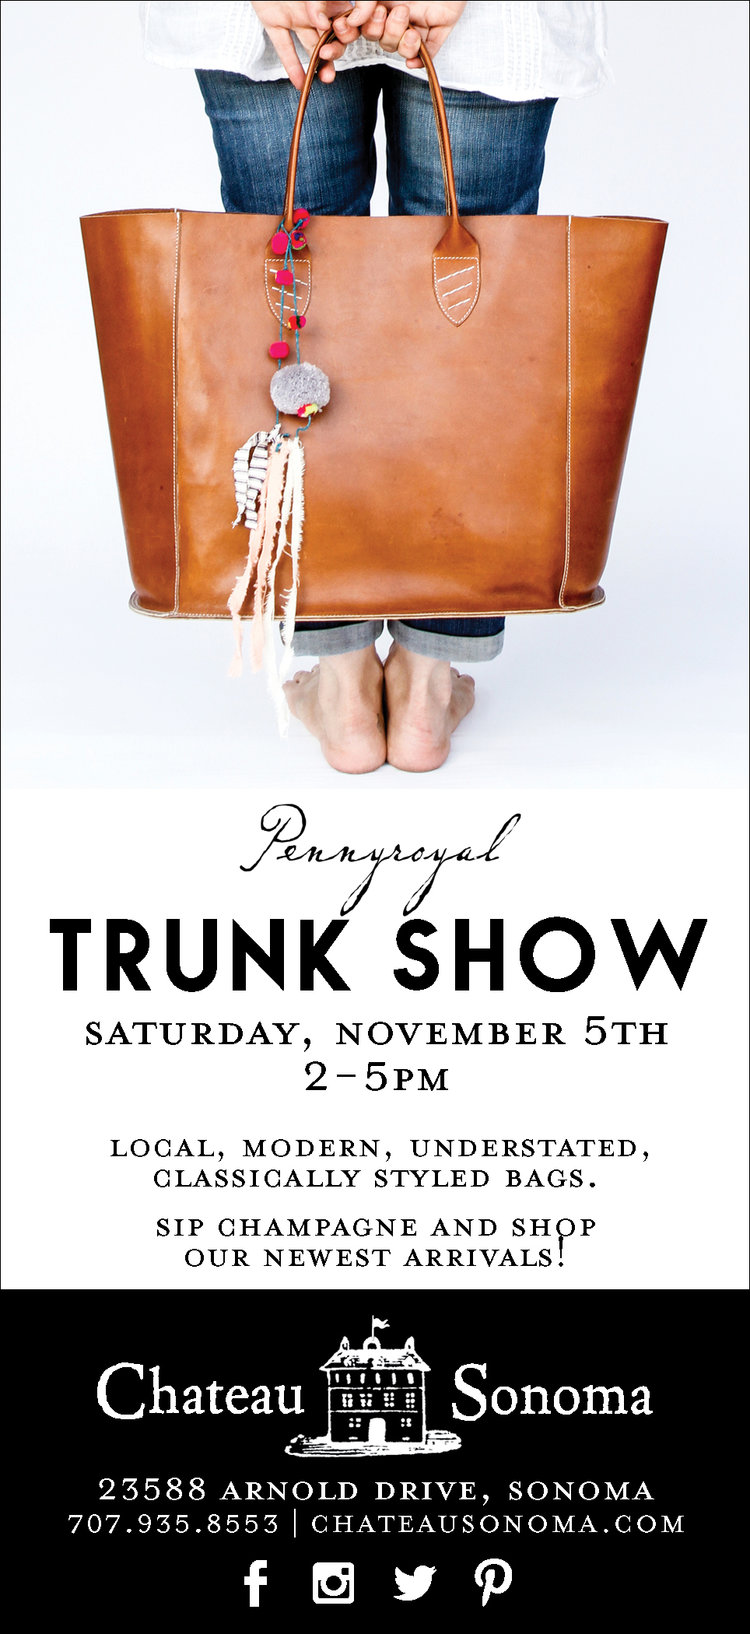 Pennyroyal Trunk Show at Chateau Sonoma